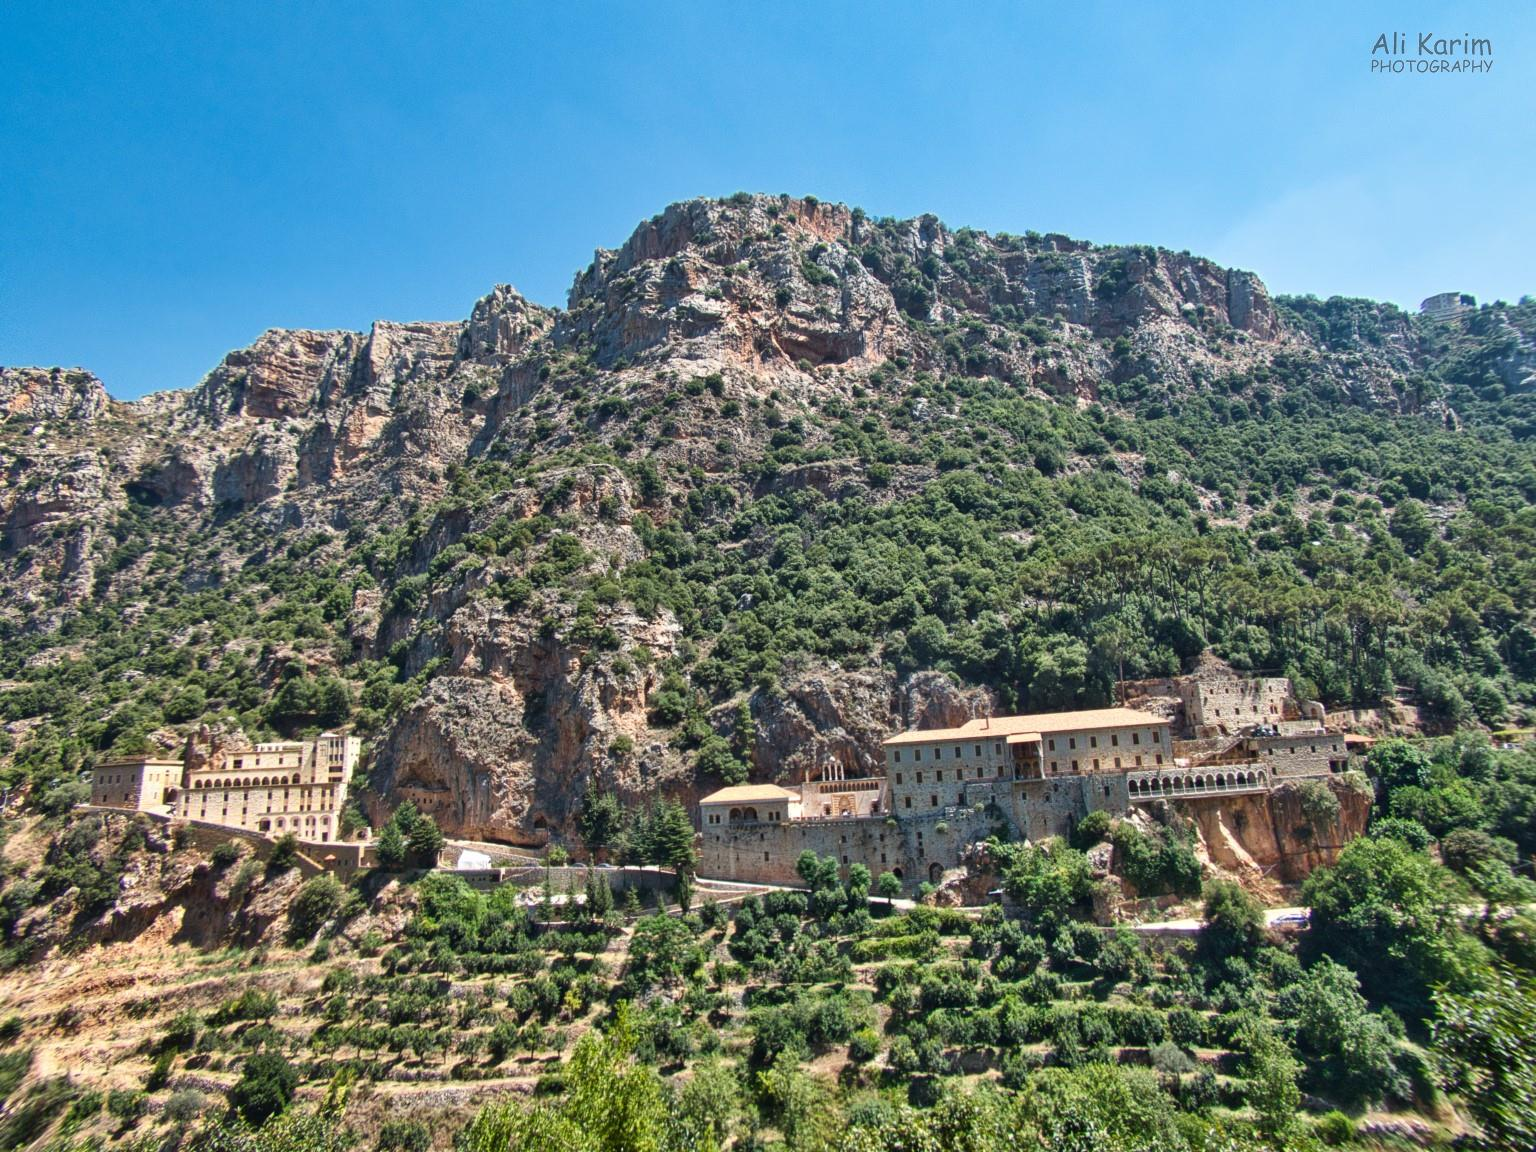 Bsharri and Quadisha Valley Der Mar Antonios Qozhaya monastery in a remote location